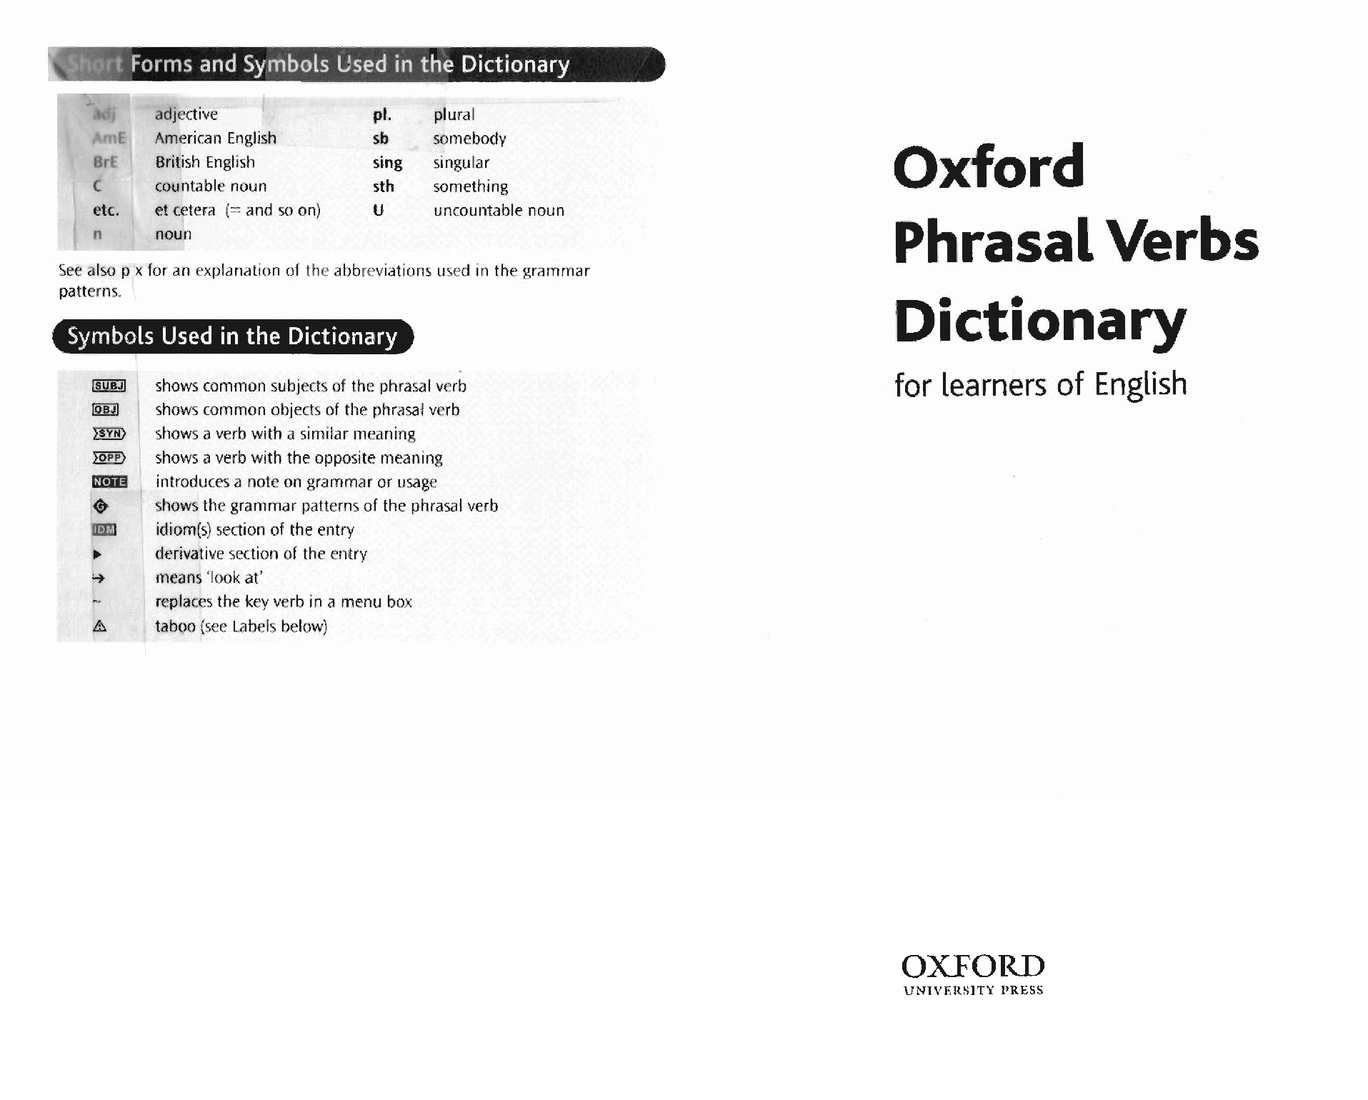 Oxford Phrasal Verbs Dictionary_0194315436